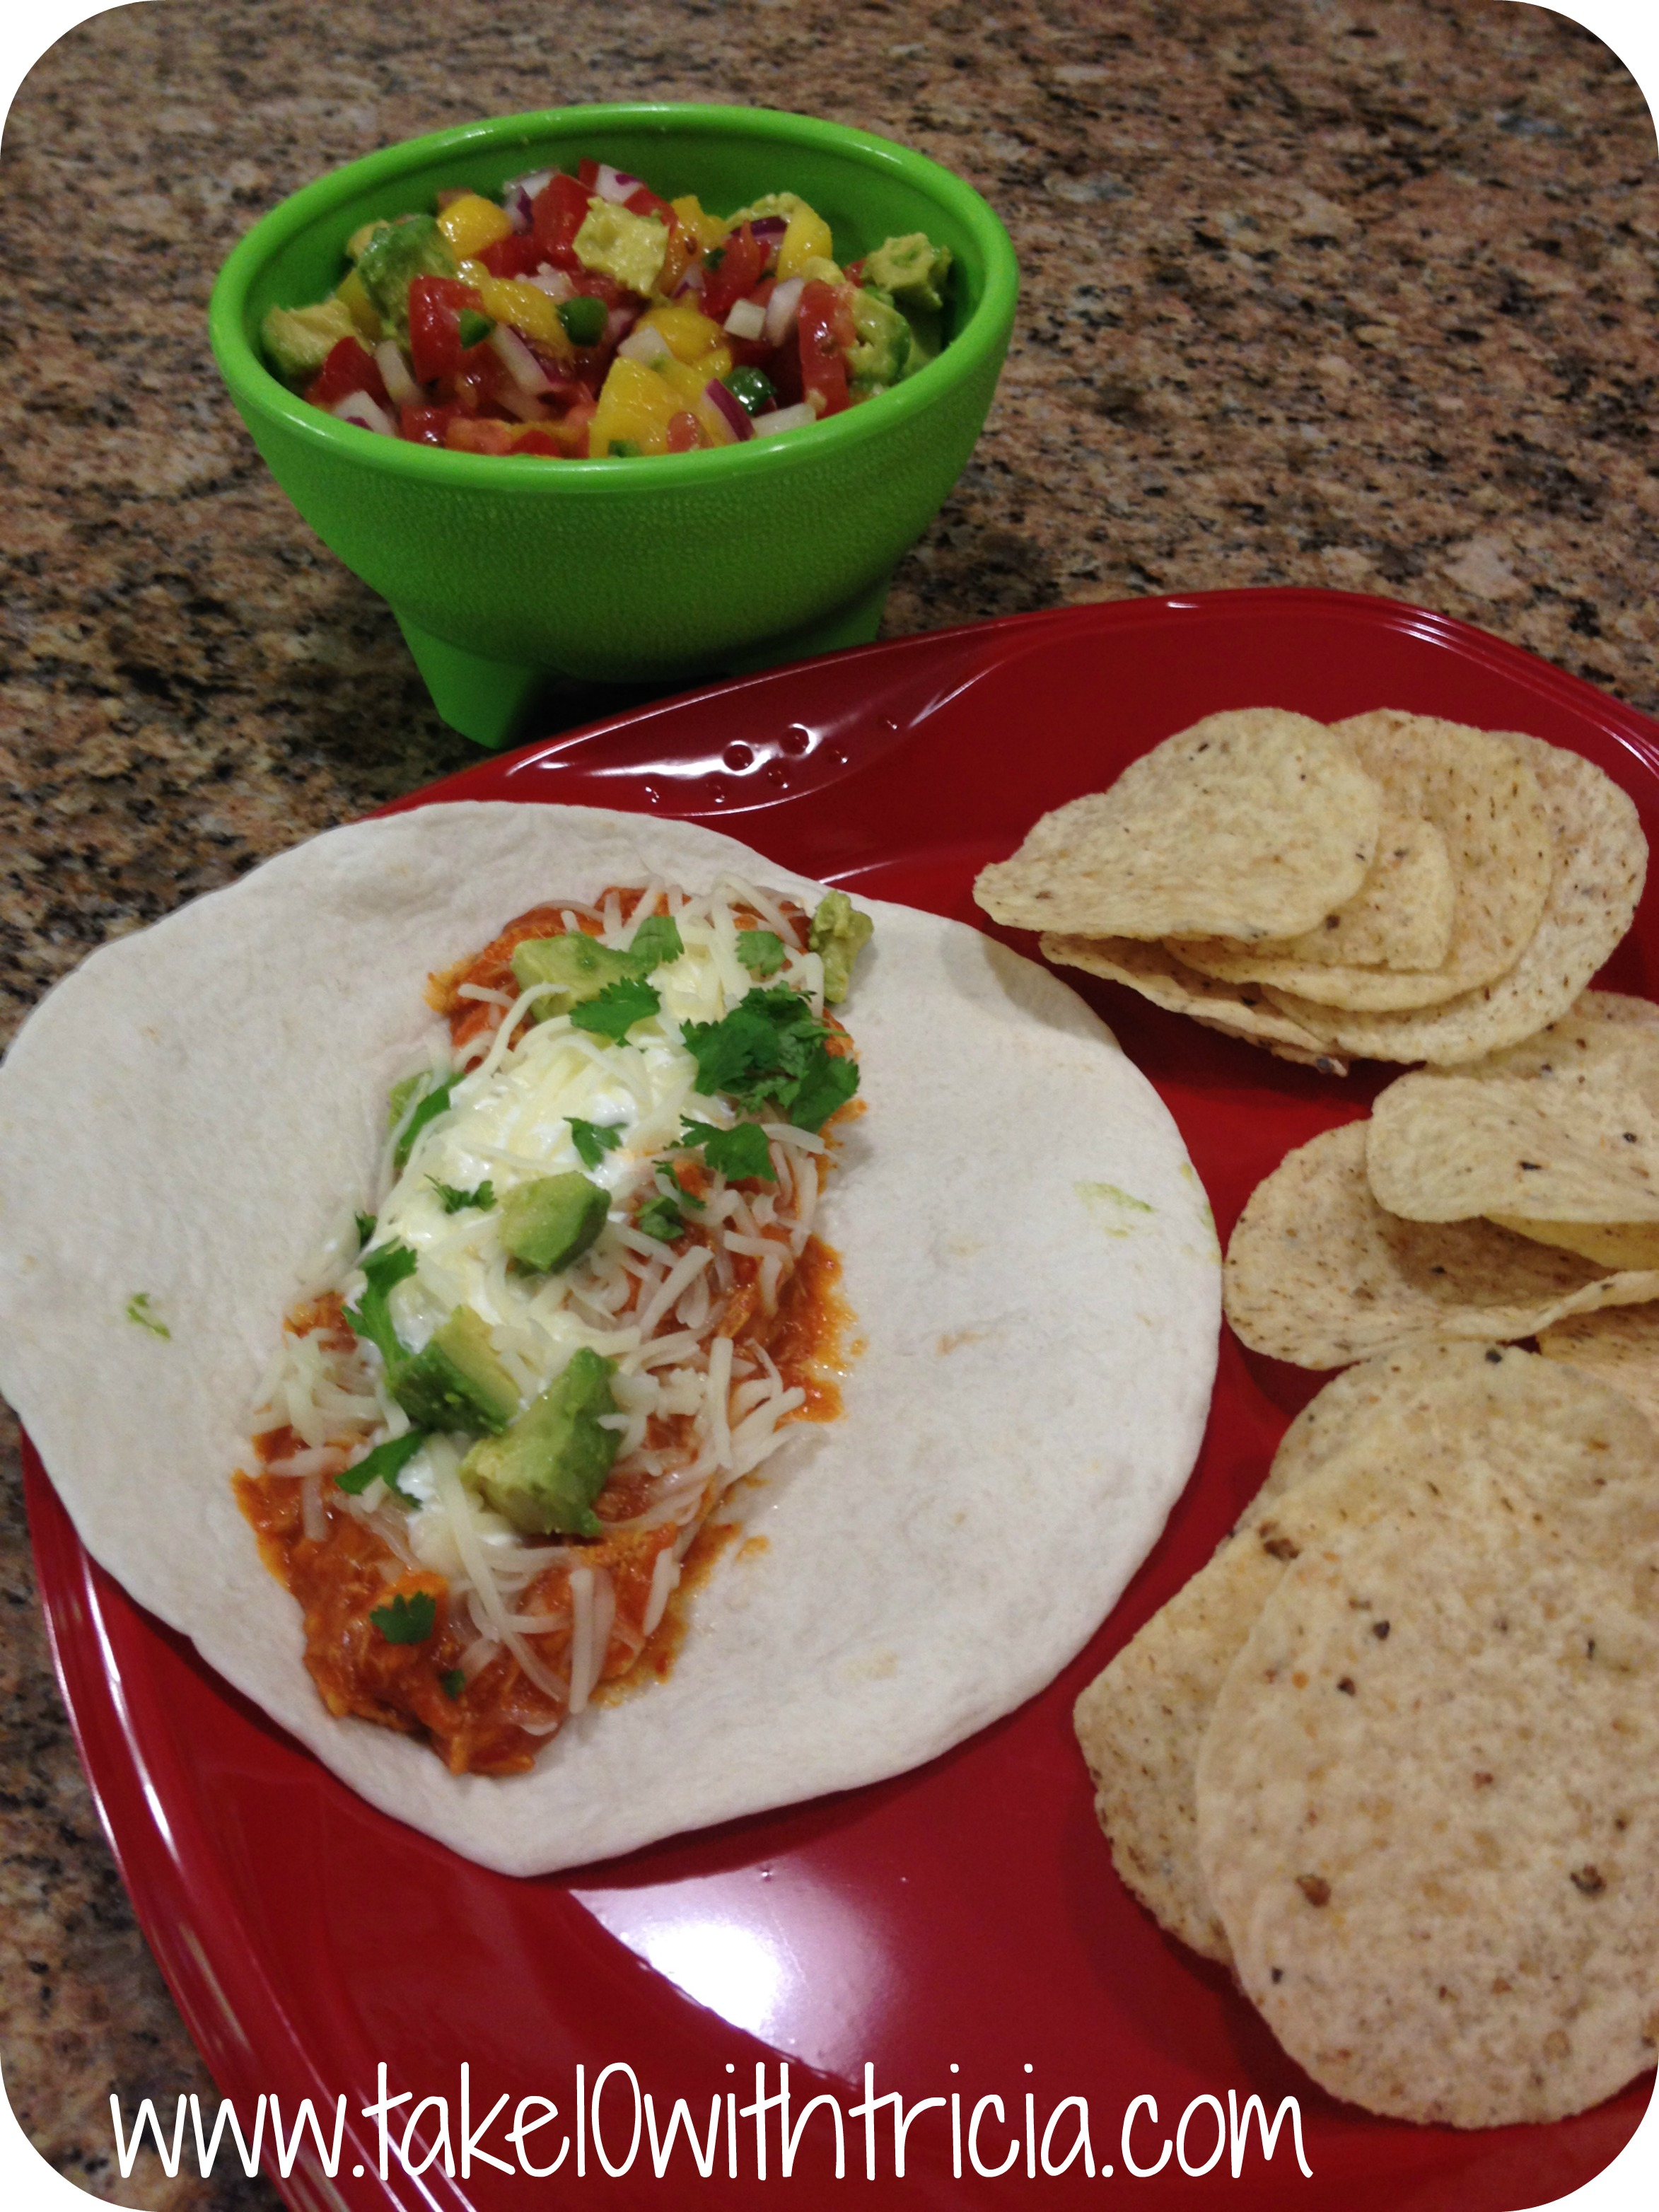 Kroger-taste-of-mexico-shredded-chicken-taco